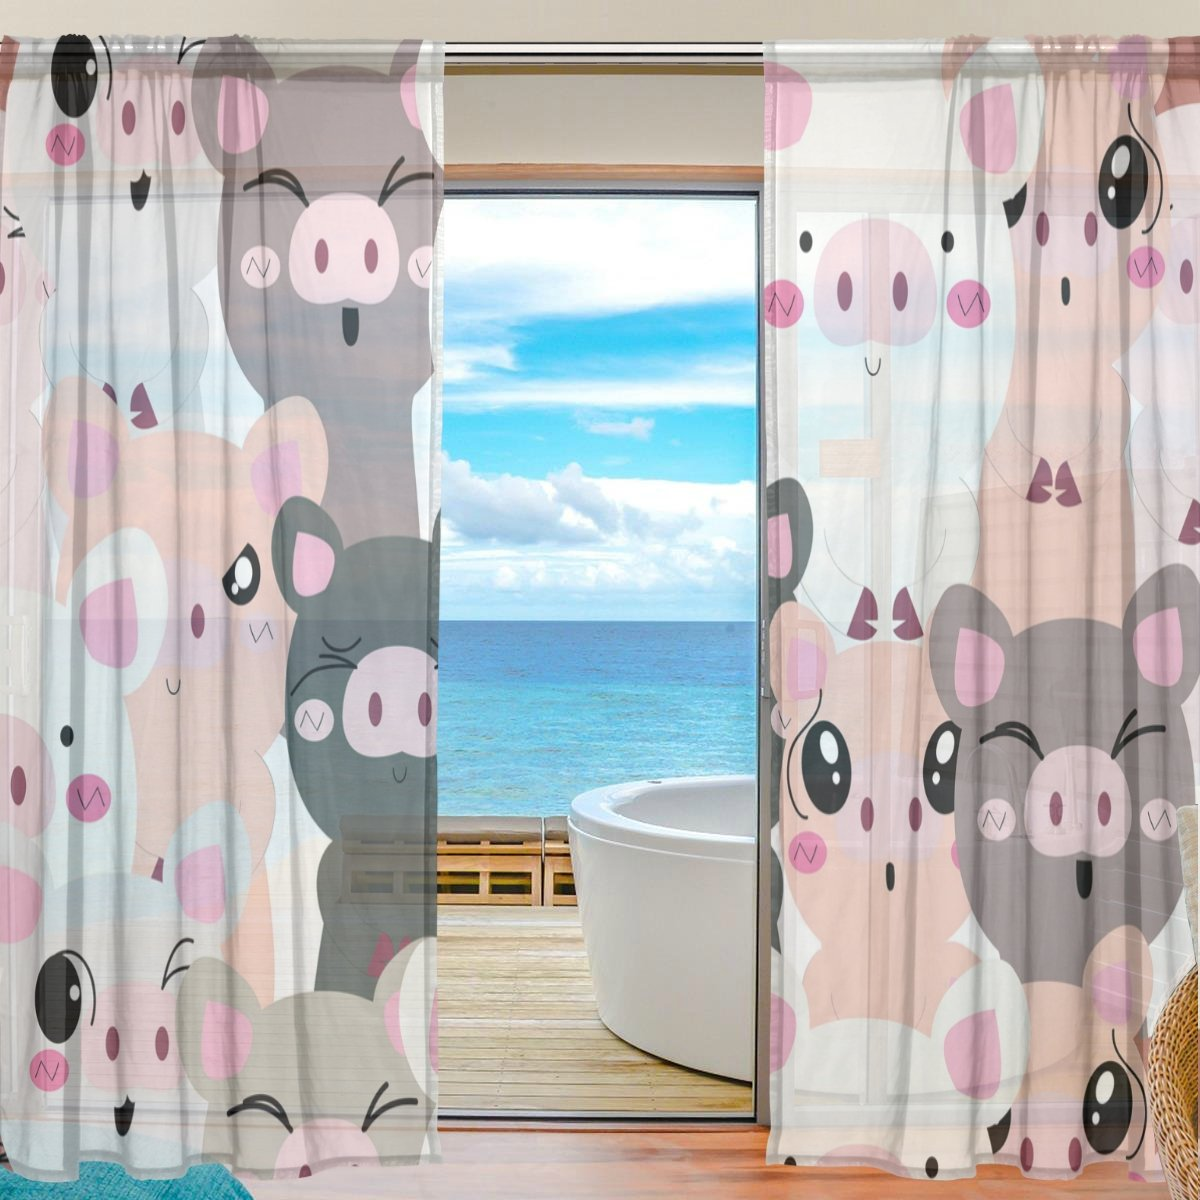 SEULIFE Window Sheer Curtain, Cute Pig Animal Pattern Voile Curtain Drapes for Door Kitchen Living Room Bedroom 55x78 inches 2 Panels g3222783p113c127s169